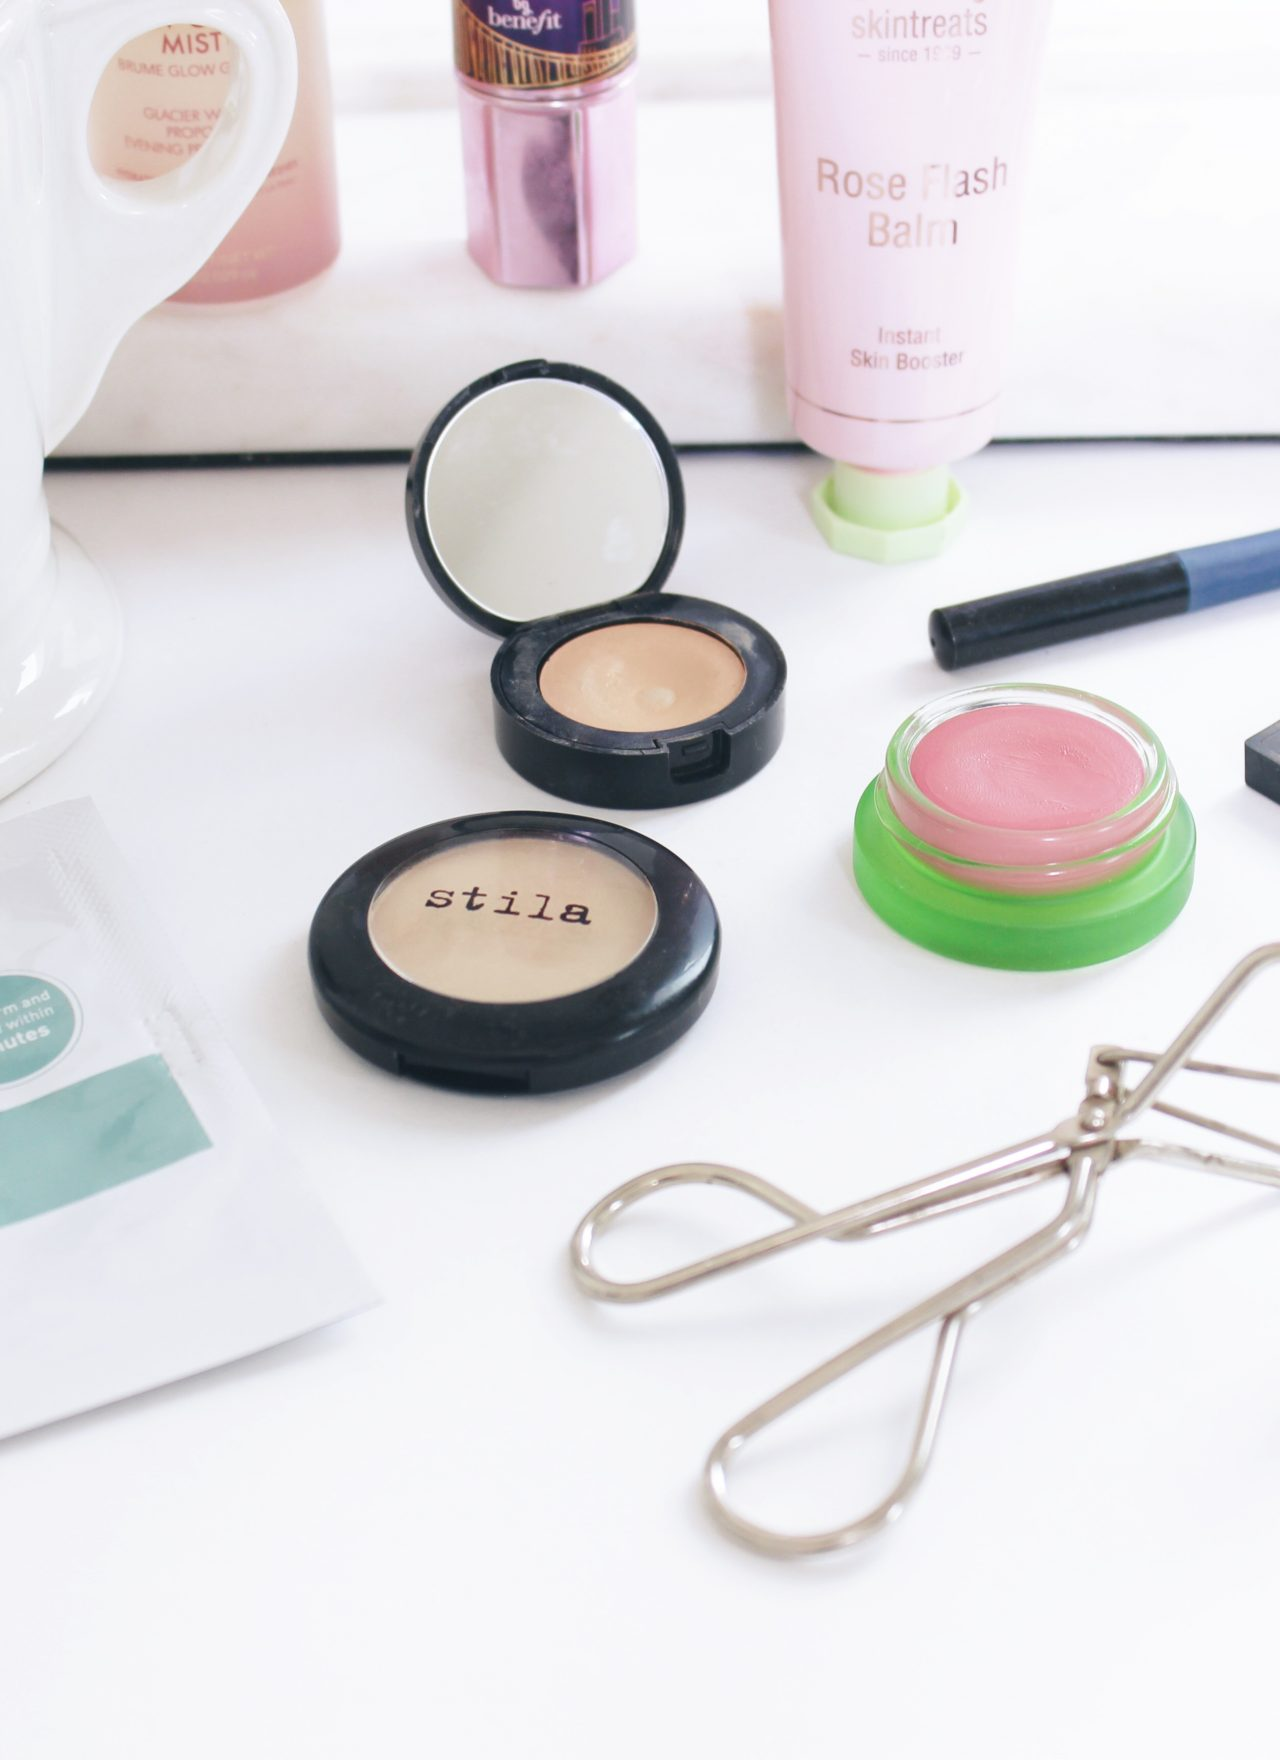 MAKEUP TIPS TO LOOK MORE AWAKE | MAKEUP FOR TIRED EYES | MAKEUP FOR DARK CIRCLES | MAKEUP FOR TIRED MOMS | HOW TO LOOK AWAKE IN THE MORNING | HOW TO LOOK AWAKE WITH NO SLEEP | #tiredeyes #awakemakeup #howtolookawake #howtolooklesstired